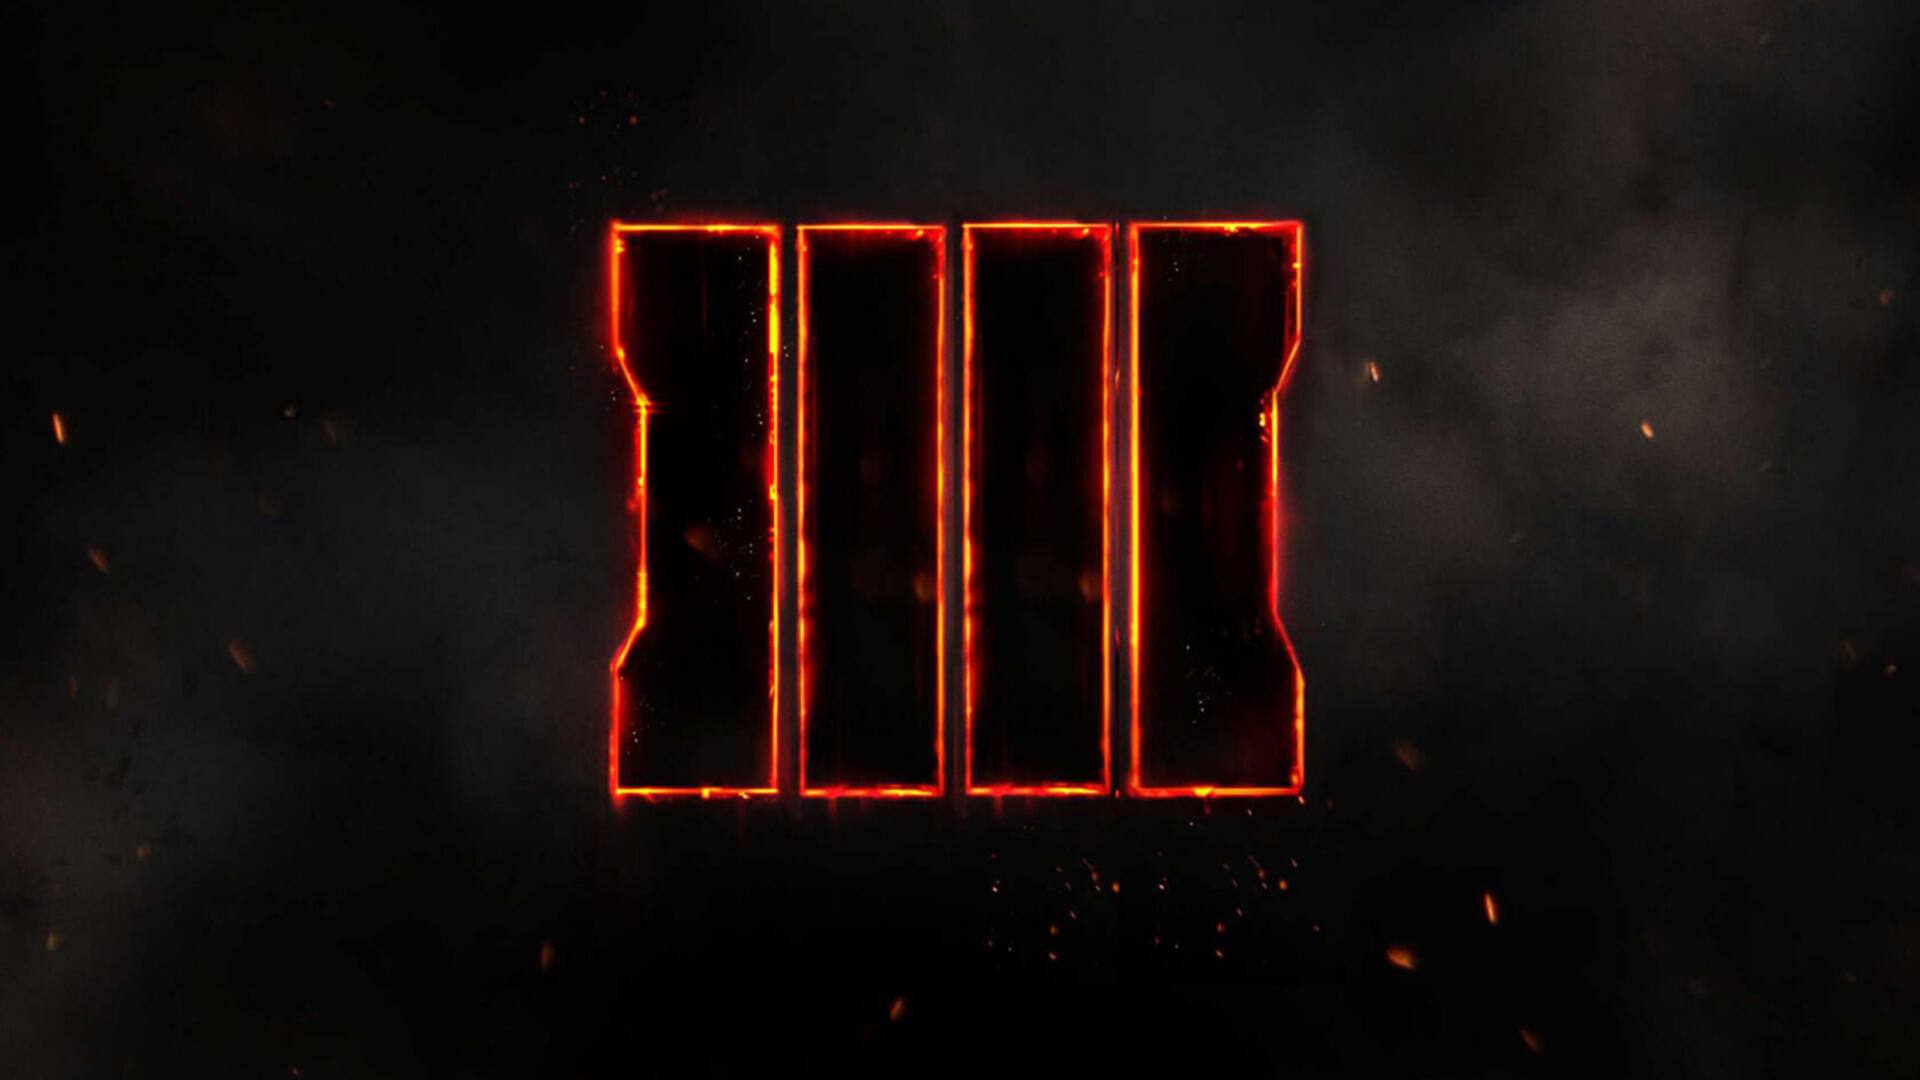 Report: Call of Duty: Black Ops 4 Won't Ship With a Traditional Single-Player Mode [Update: Battle Royale Rumored]